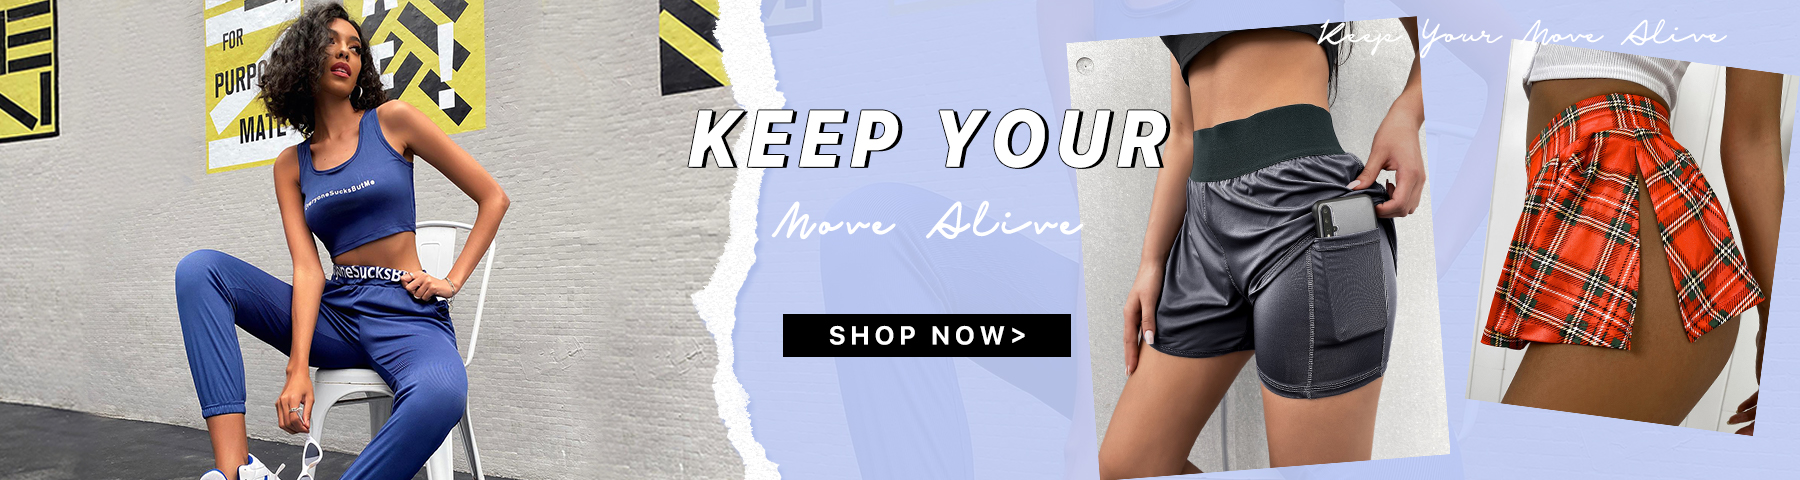 Keep Your Move Alive